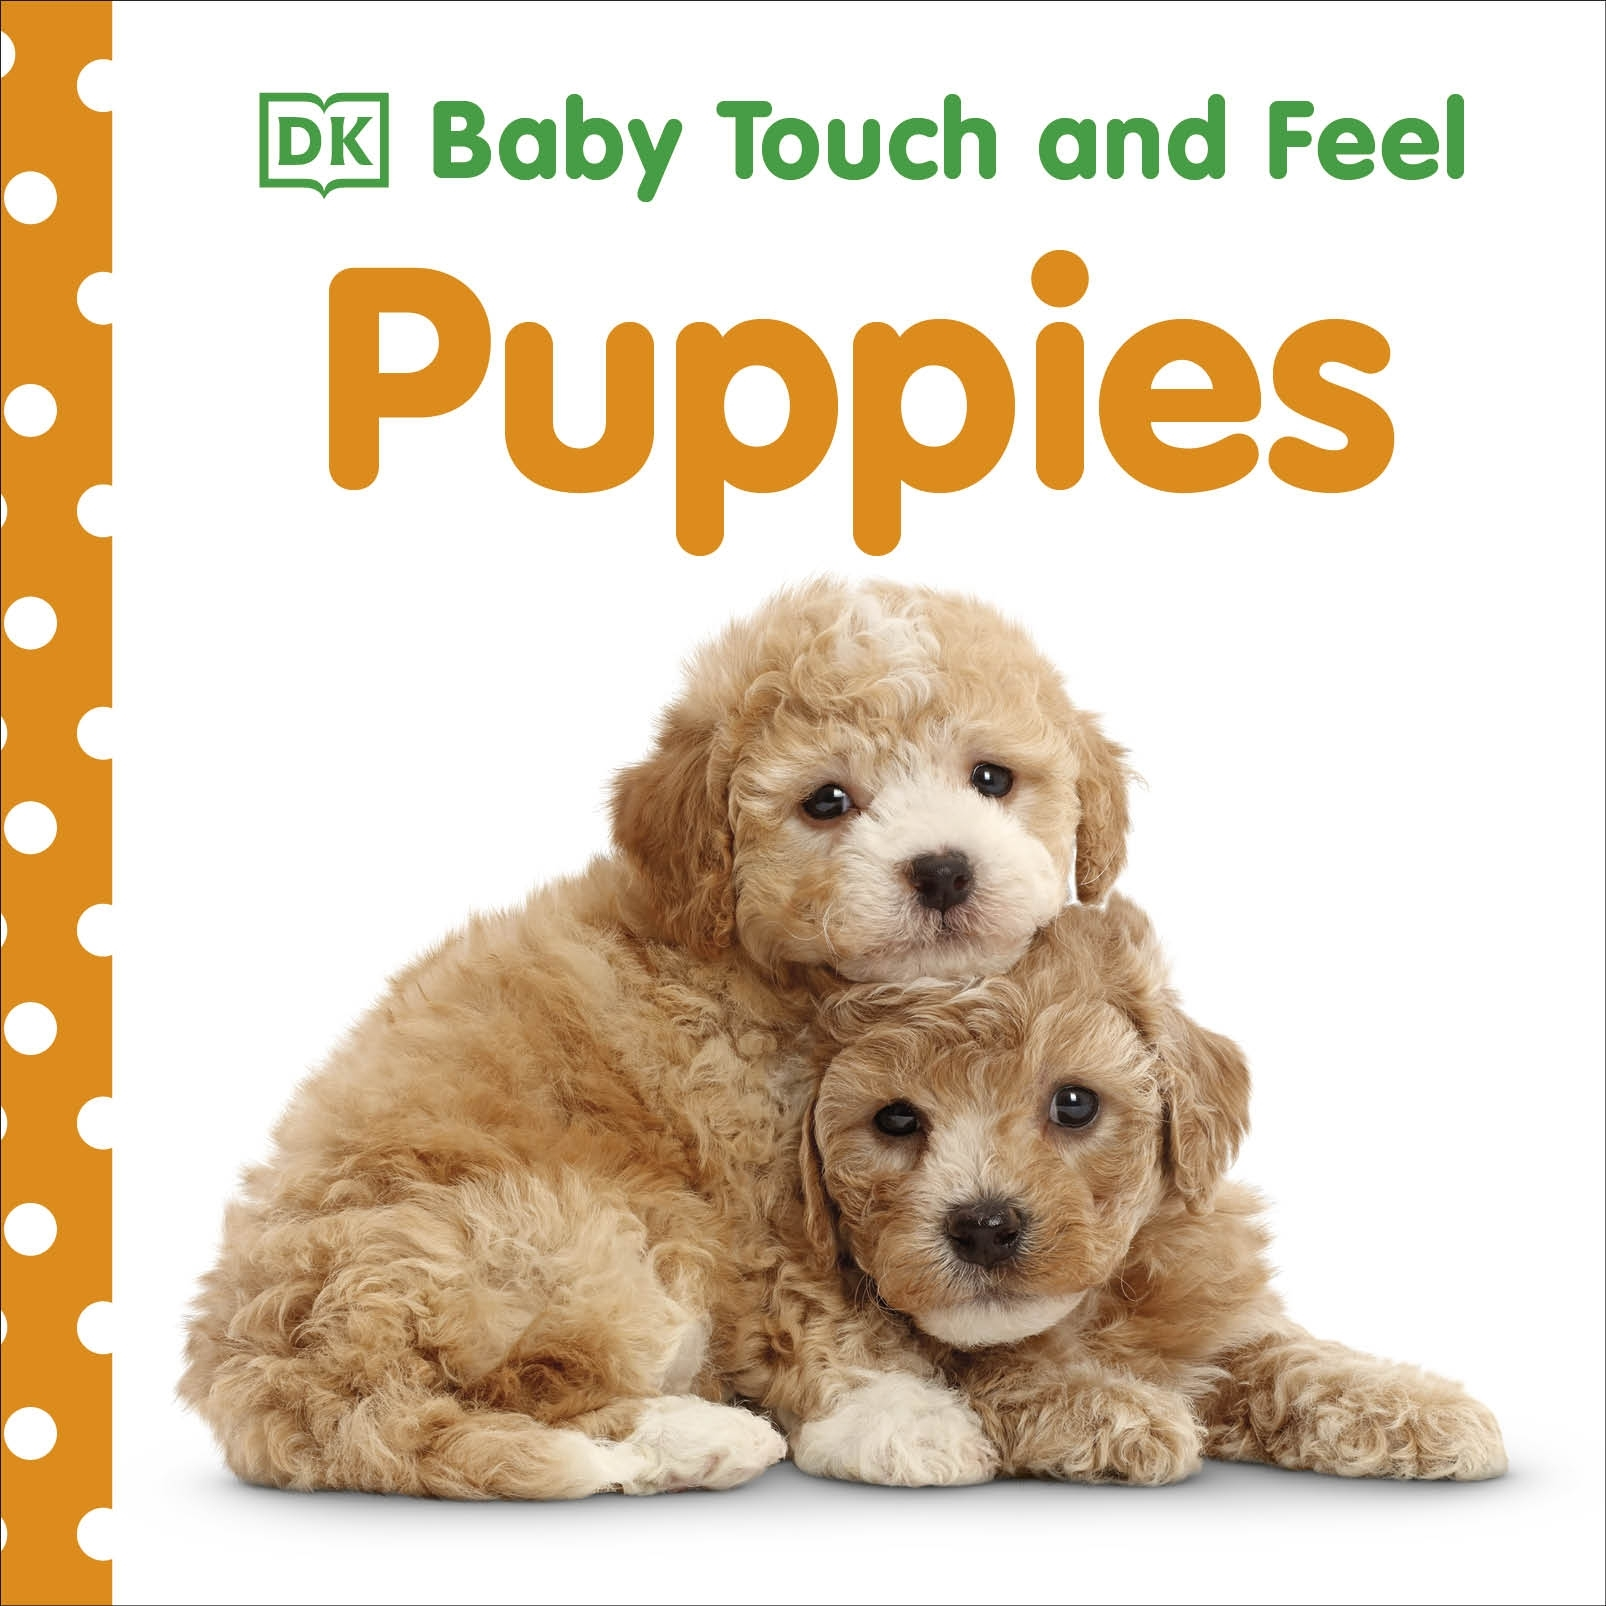 Baby Touch And Feel Puppies By Dk Penguin Books New Zealand